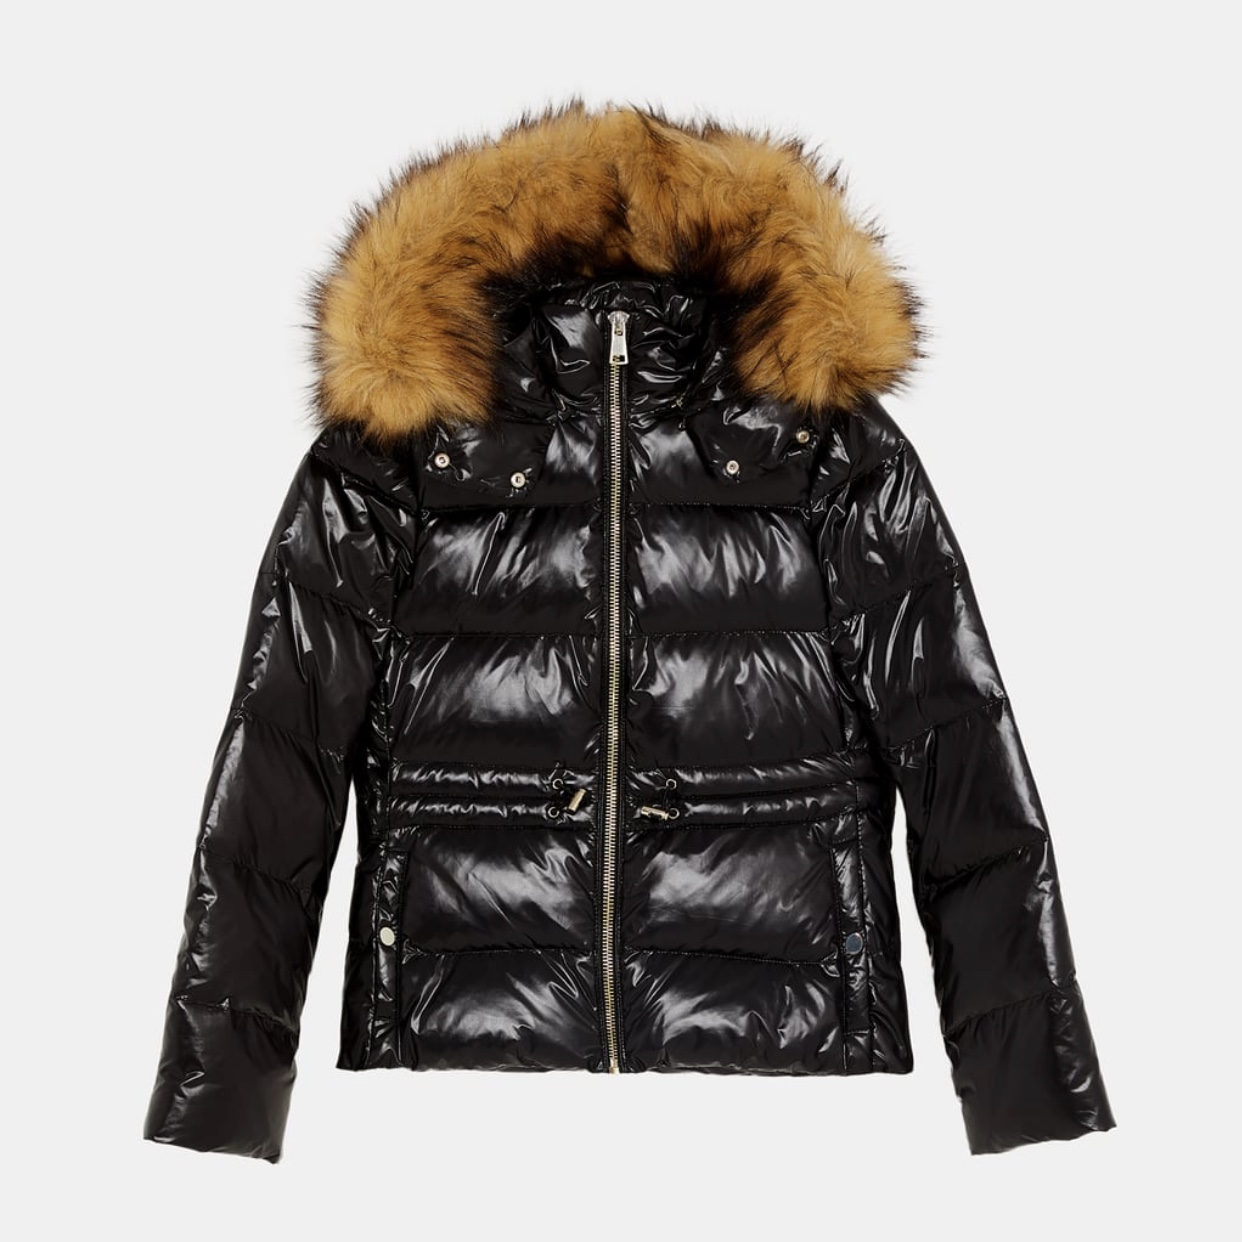 25c3fe12 Zara black shiny puffer jacket with faux fur hood... - Depop